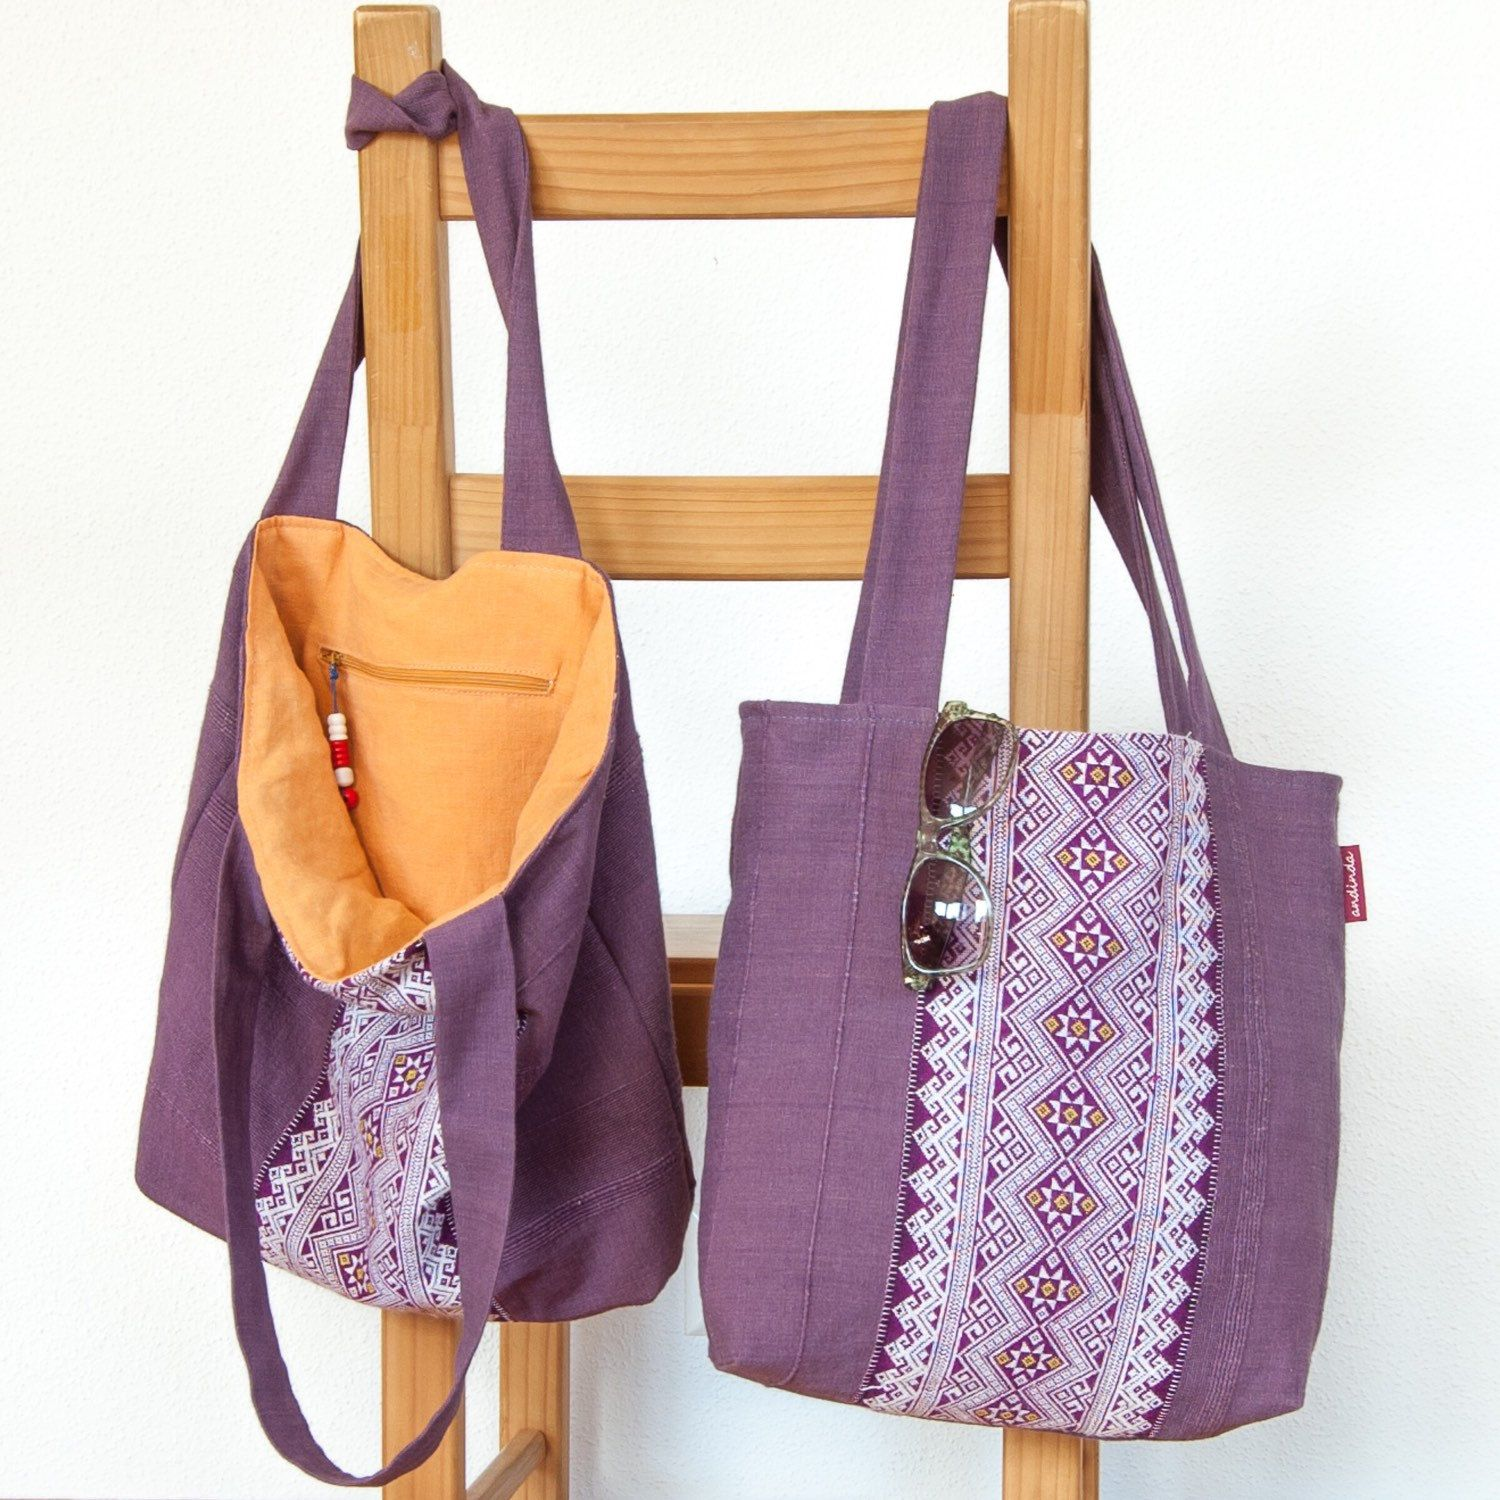 A lovely soft but durable summer tote. Great gift for mother's day. Two are available.